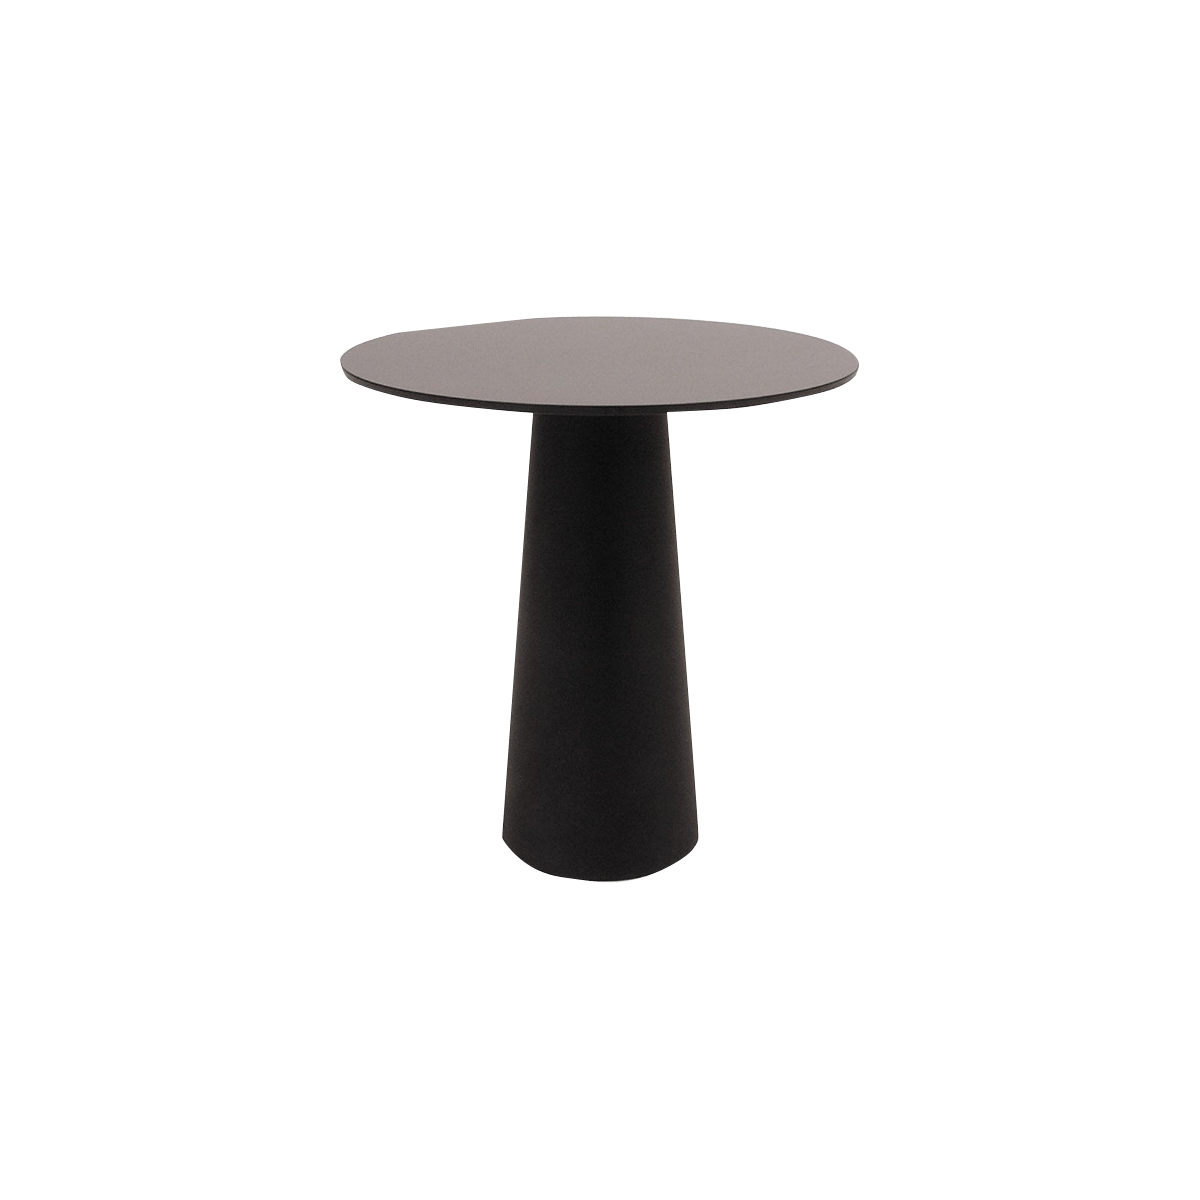 Moooi  Container Table 7130 桌子